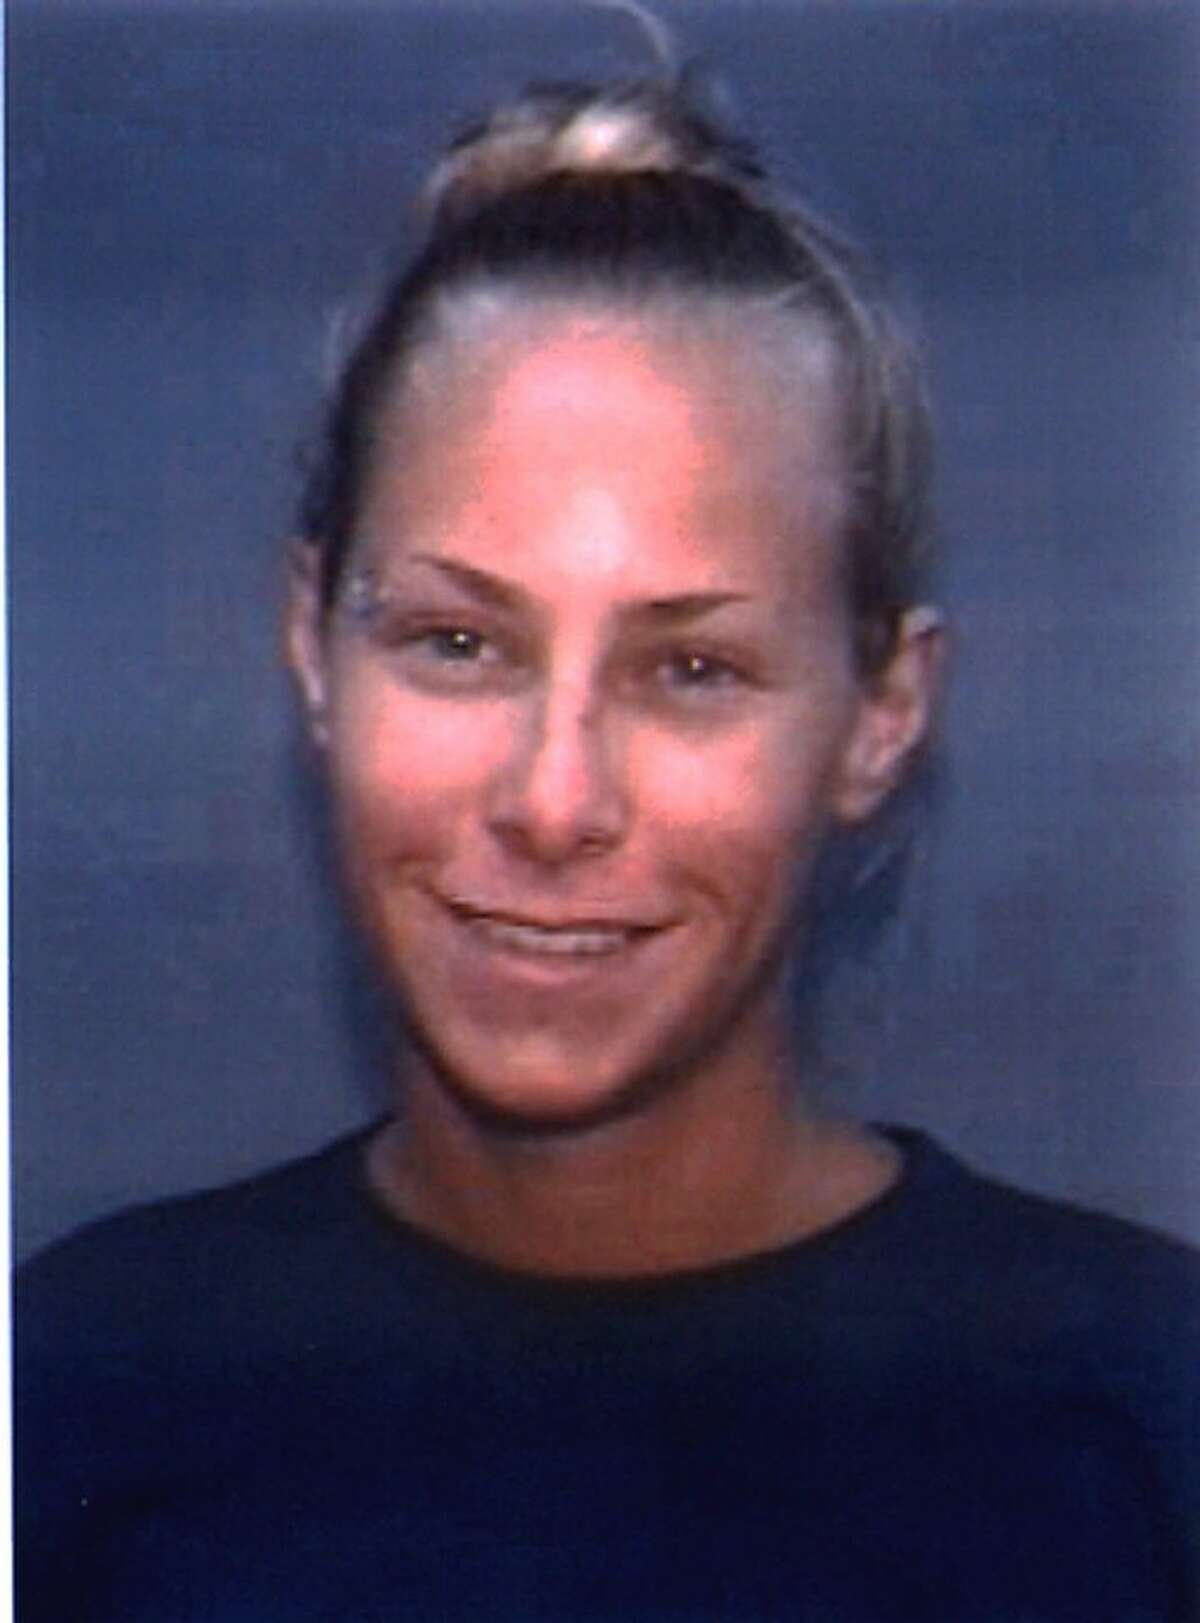 Tracey Natalie Biletnikoff, 20, seen in undated drivers license handout photo, daughter of former Oakland Raiders wide receiver Fred Bilentnikoff, was found strangled to death Tuesday, Feb. 16, 1999 on the campus of Canada College in Redwood City, Calif. Tracey Bilentnikoff's boyfriend, Mohammed Haroon Ali, 23, has been arrested for investigation of murder in her death.